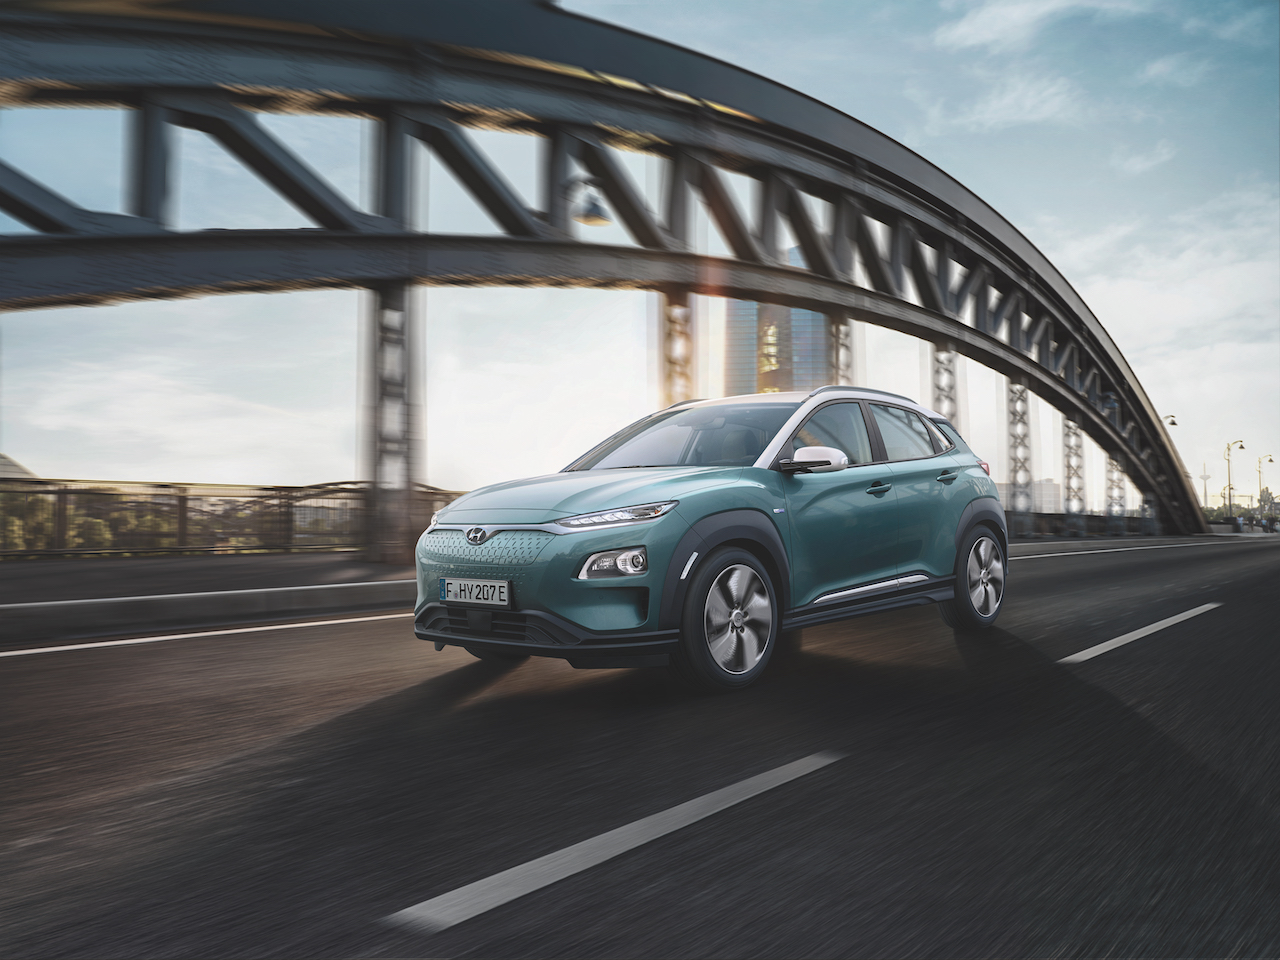 Hyundai Kona Electric SUV Revealed; India Launch in 2019